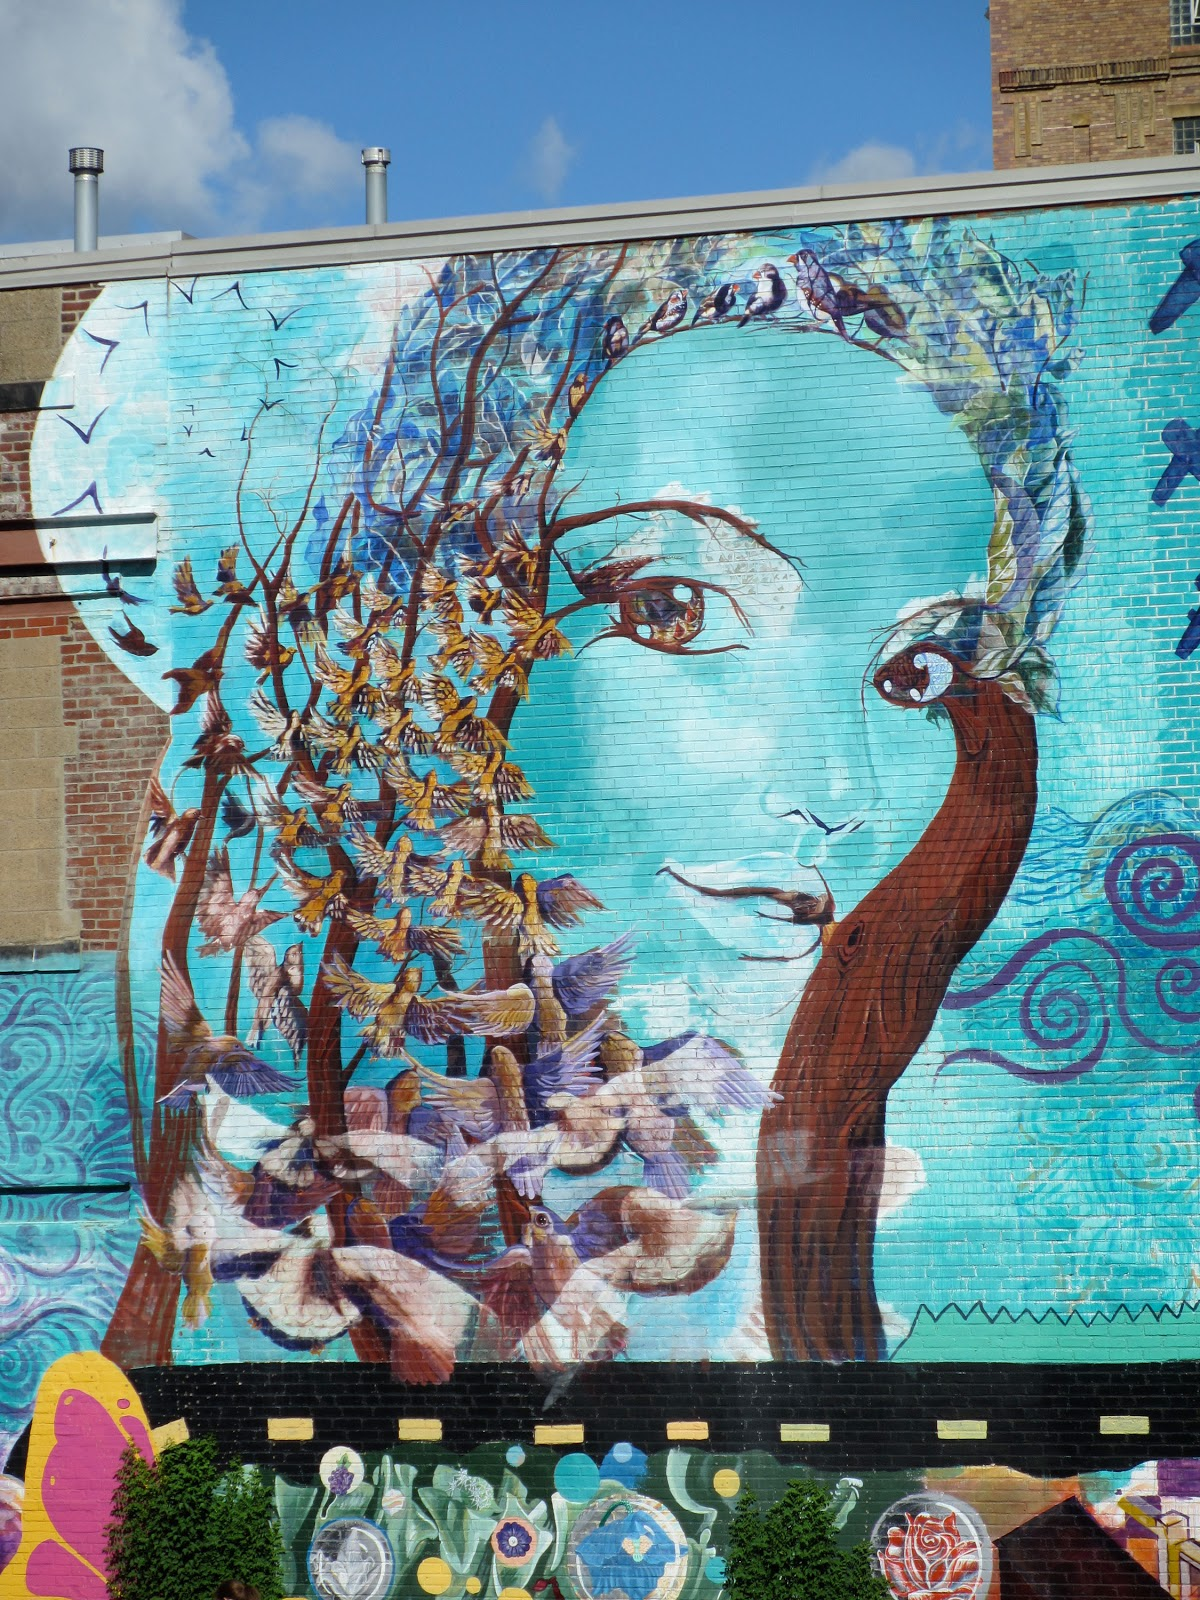 mural-pittsburgh-east-liberty-whole-foods-ashley-hodder-mother-nature-1.jpg